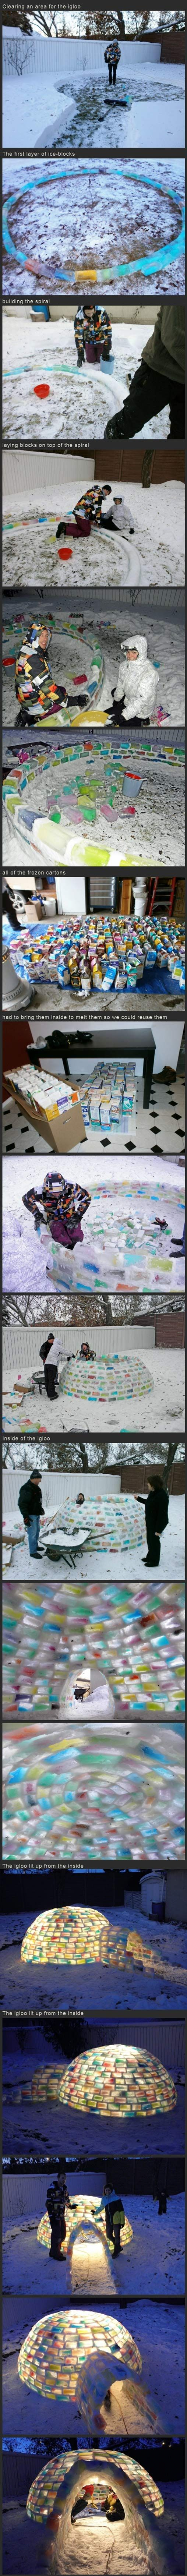 So gonna do this when Eric gets older... Guess I should start collecting containers now